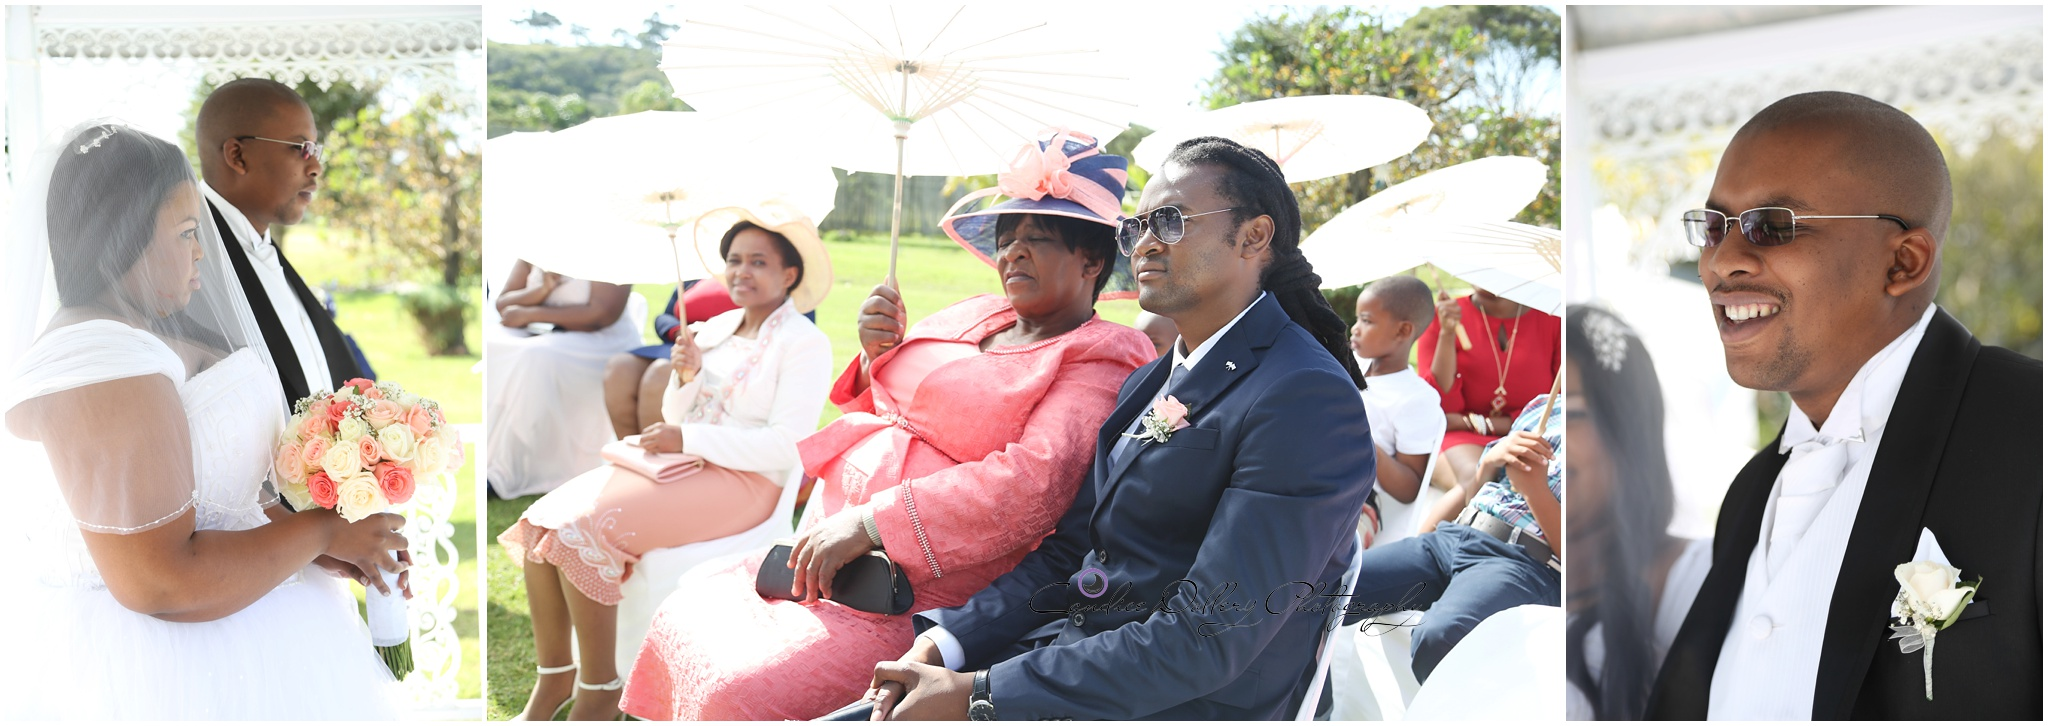 Wedding Gonubie Manor Thola & Phili-Candice Dollery Photograhy_4214